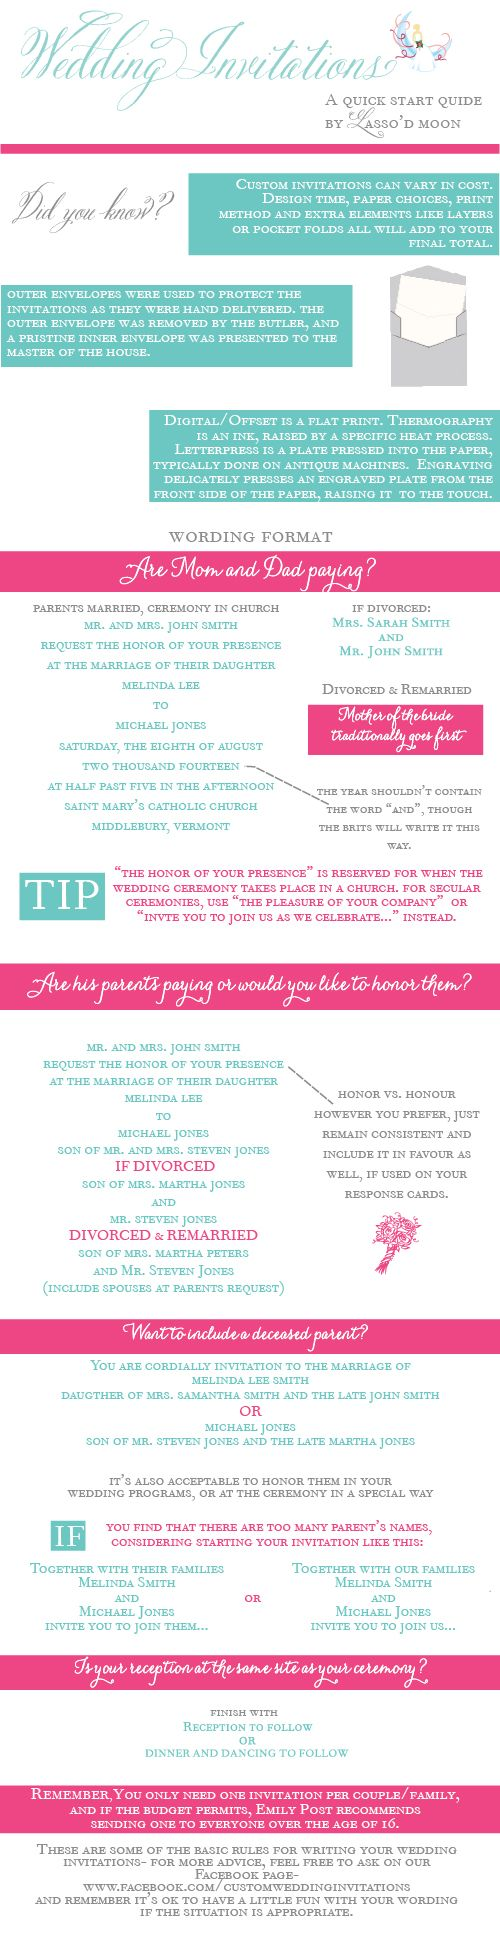 wedding invitation quick start guide infographic invitation